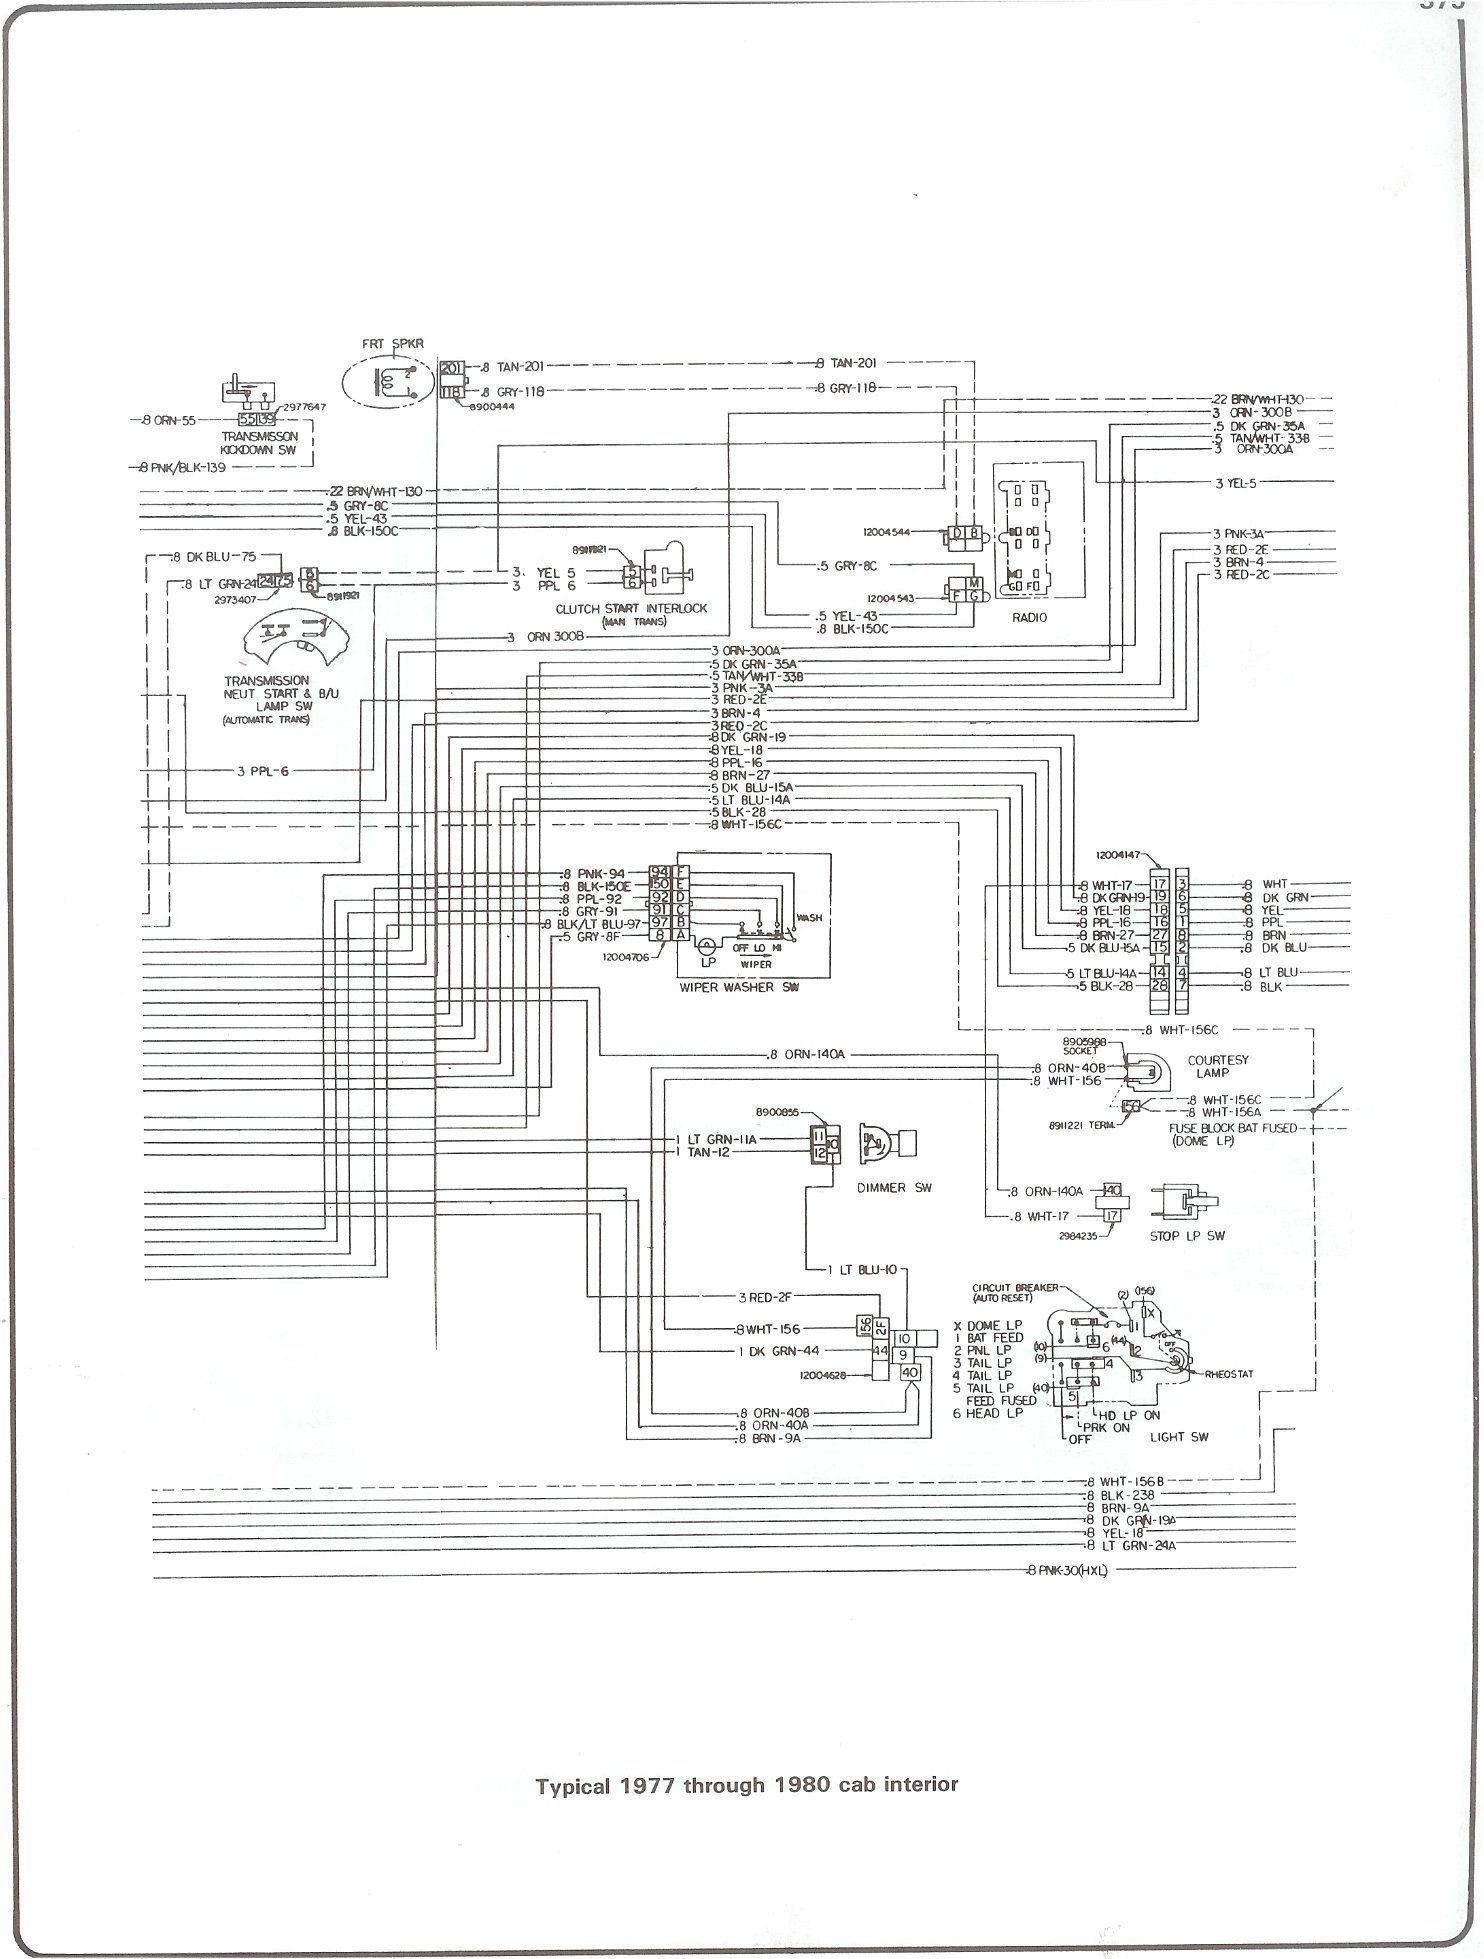 1987 Chevy C30 Wiring Diagram Free For You Motor On 2004 Impala Blower Complete 73 87 Diagrams Rh Forum 87chevytrucks Com 1500 1989